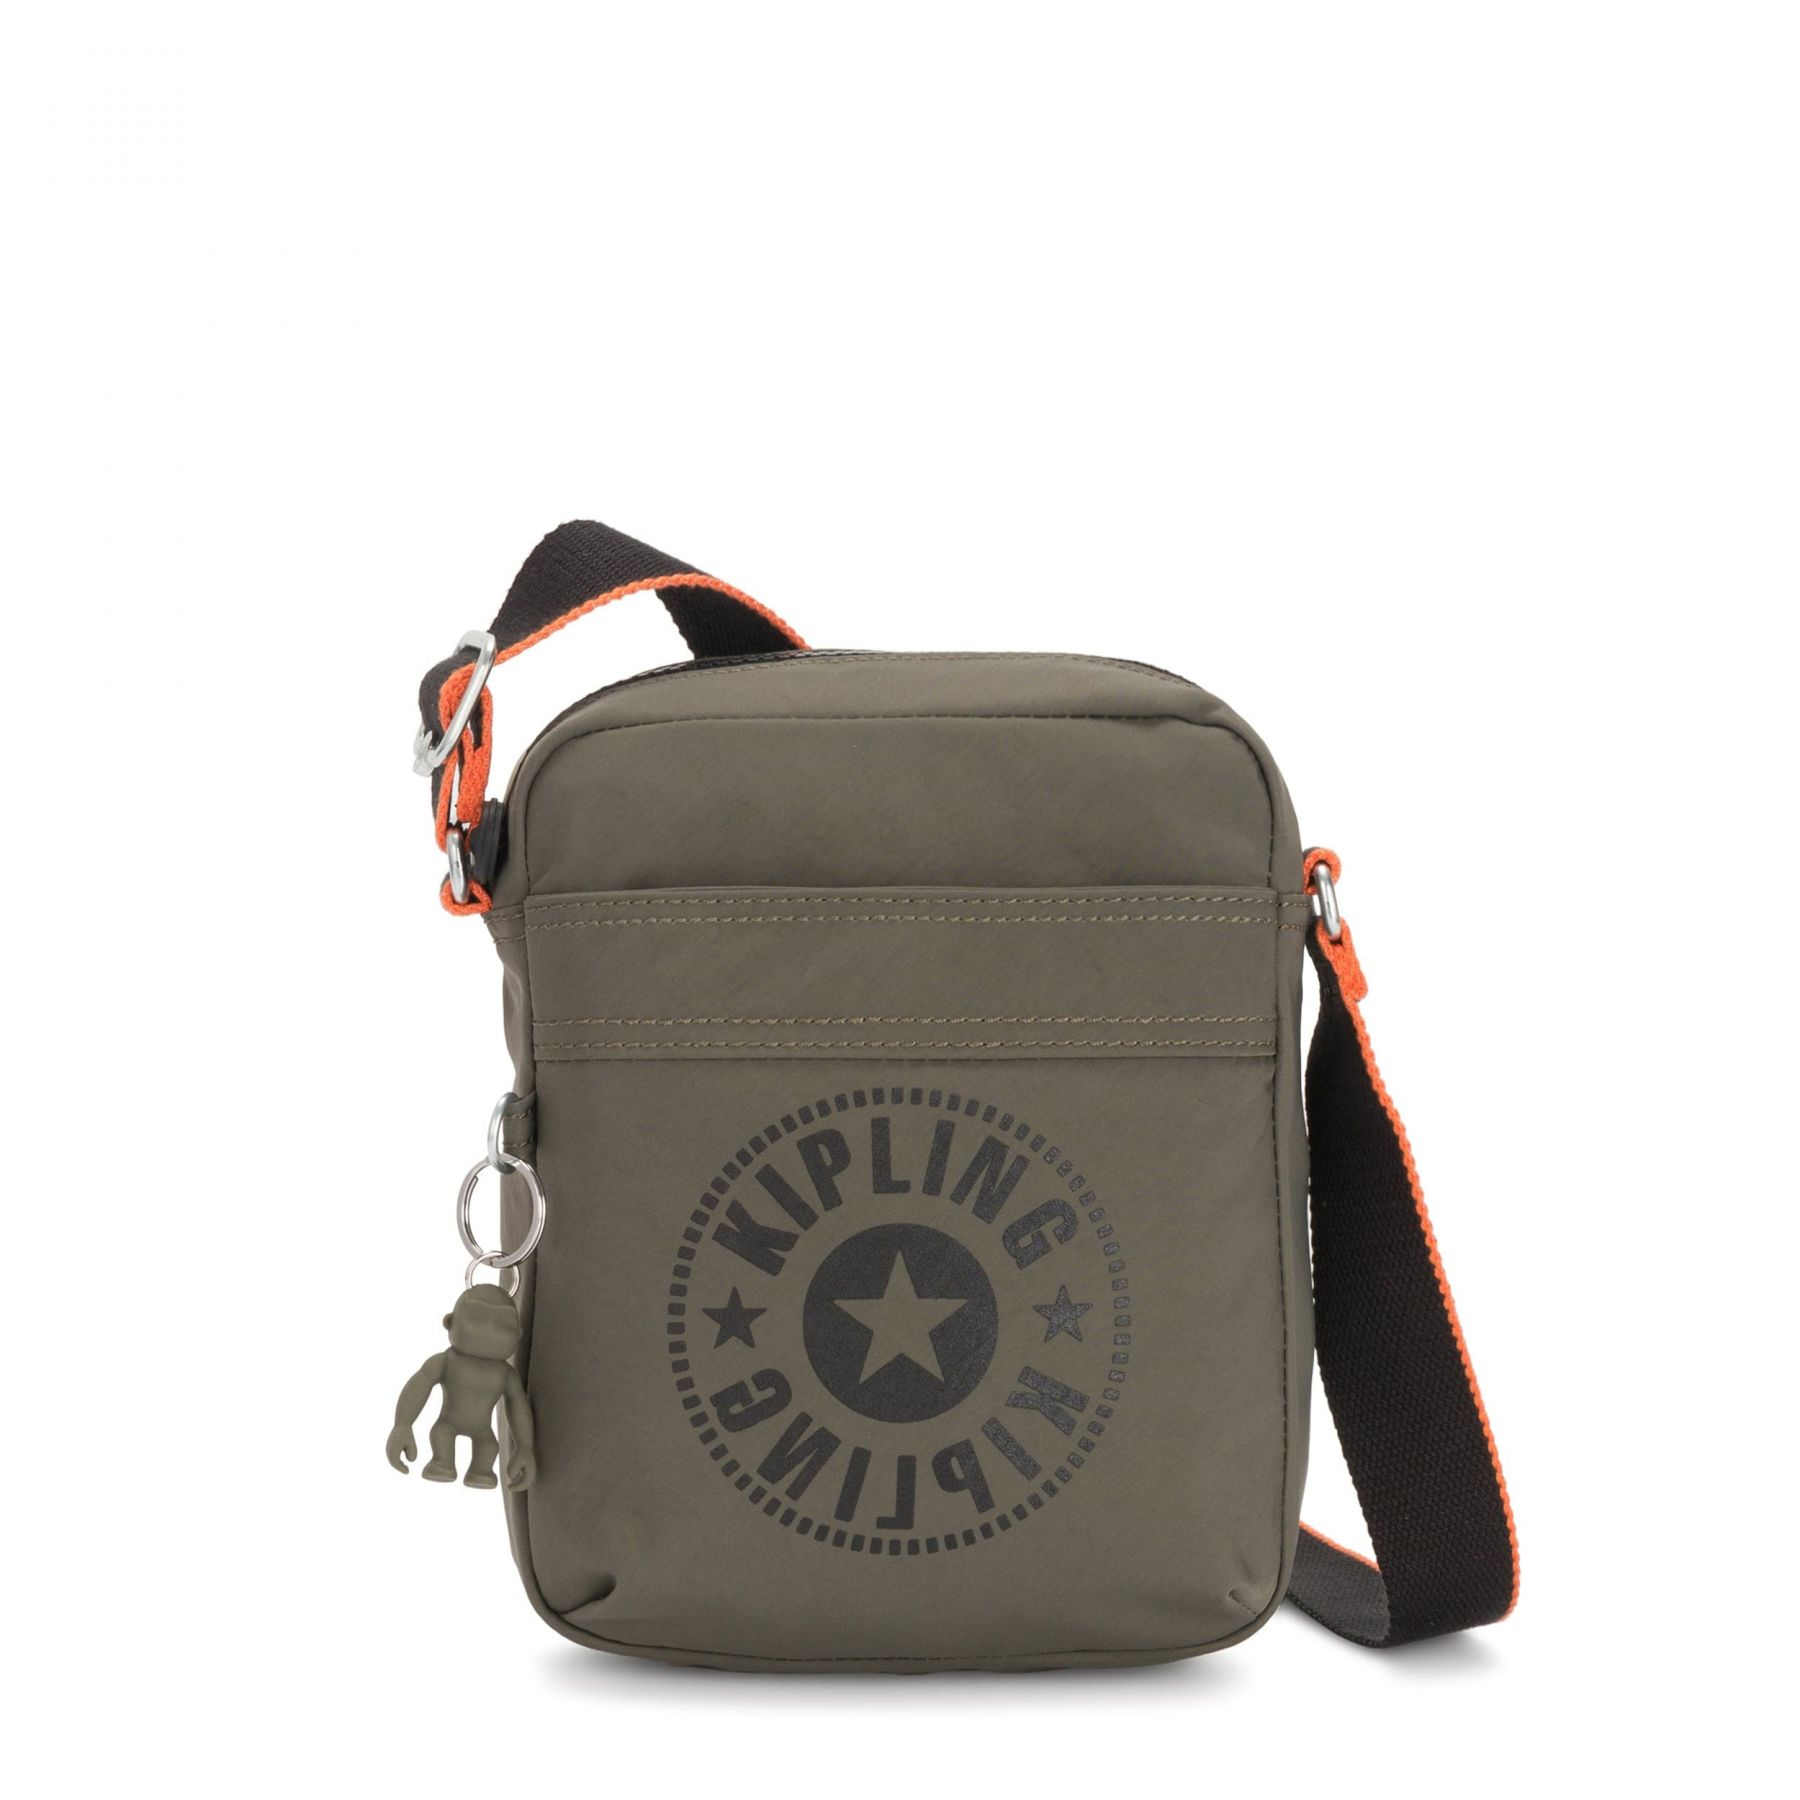 HISA Online Exclusives by Kipling - Front view